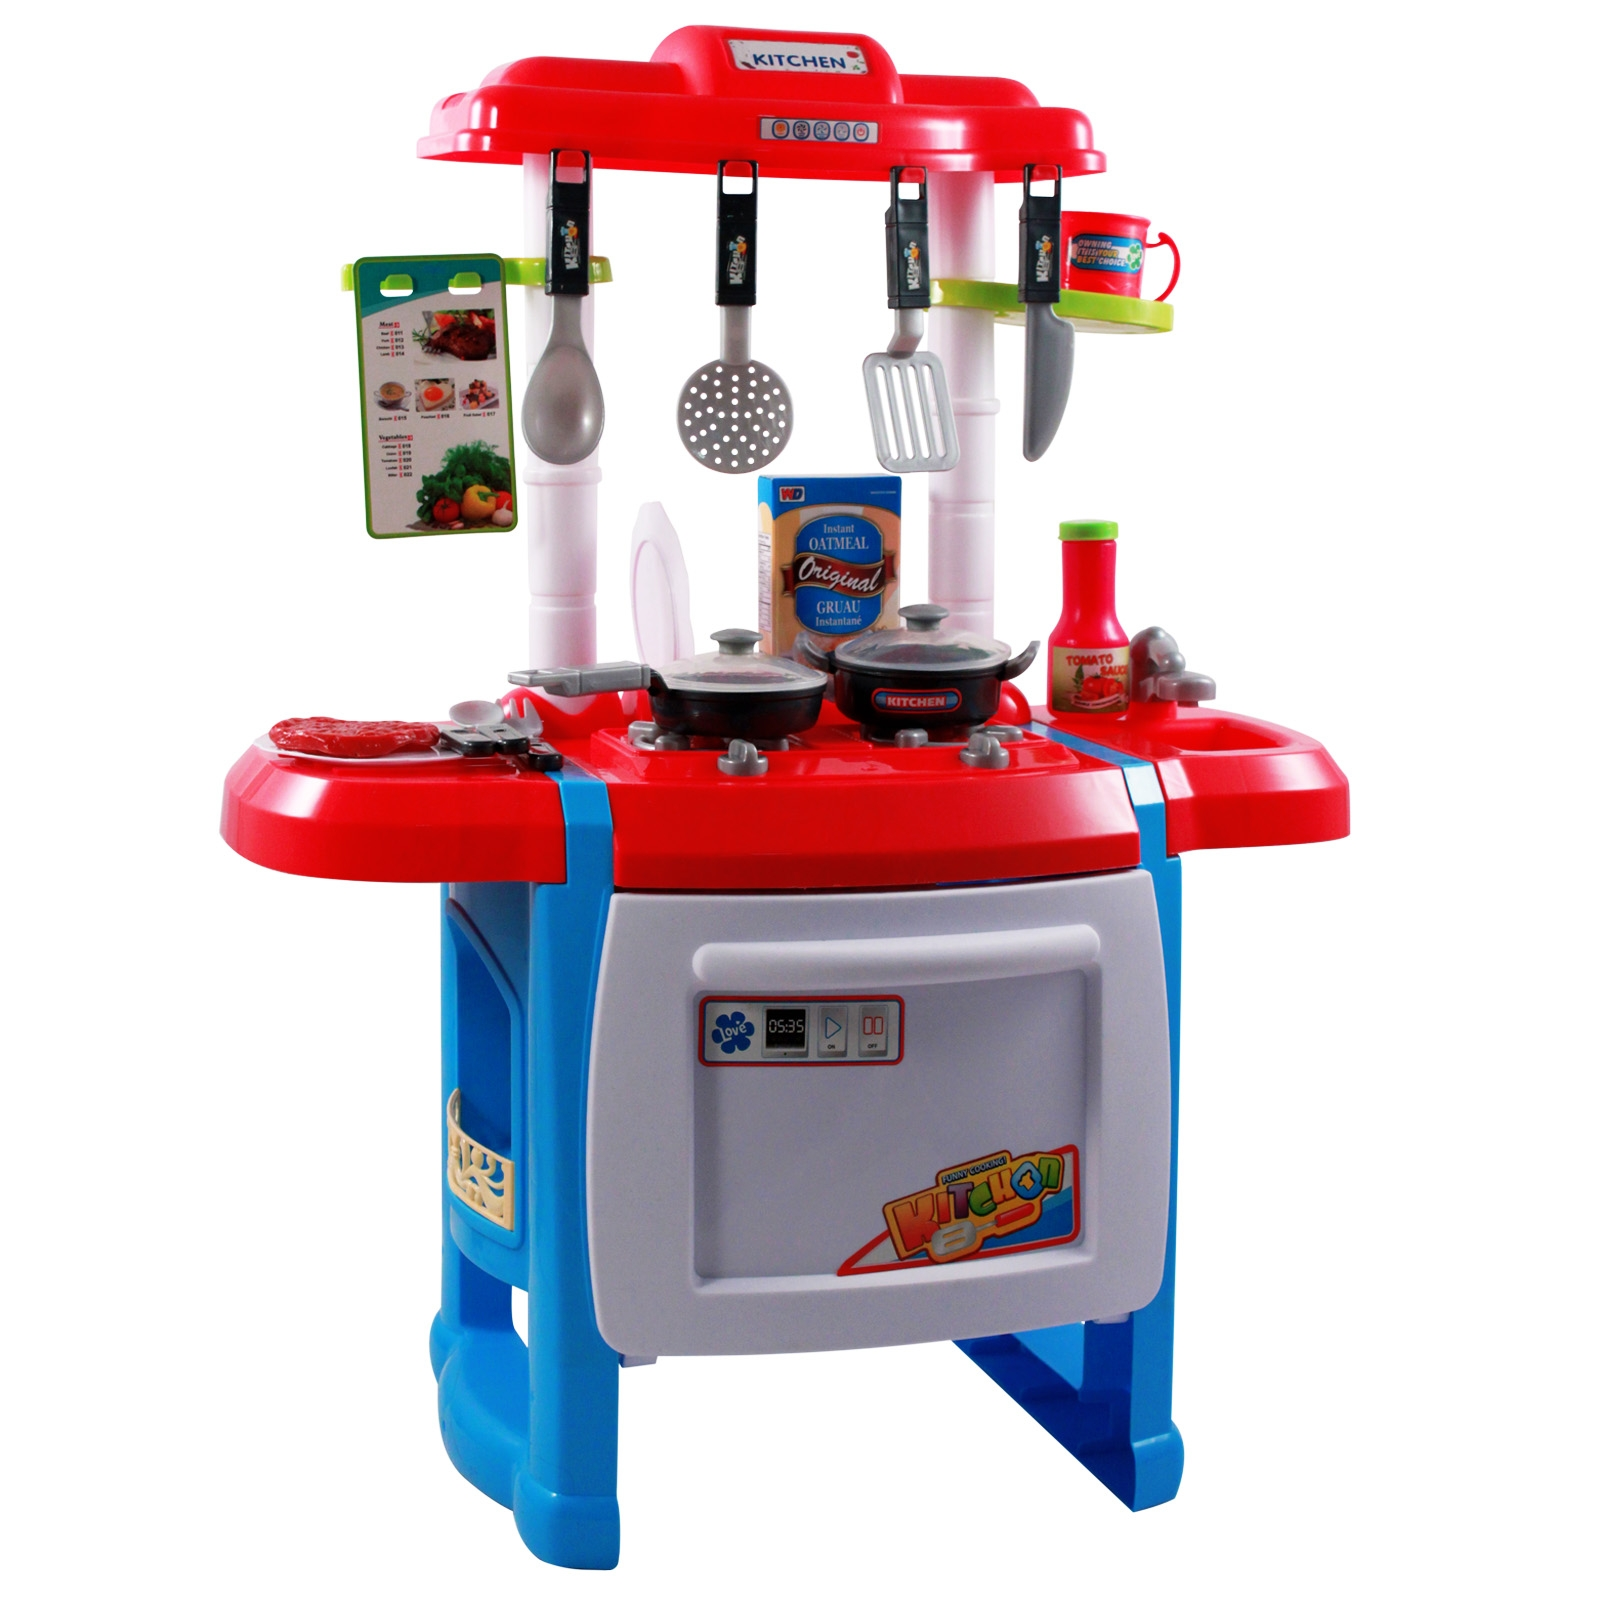 Jumbo Childrens Toy Kitchen Oven Play Set